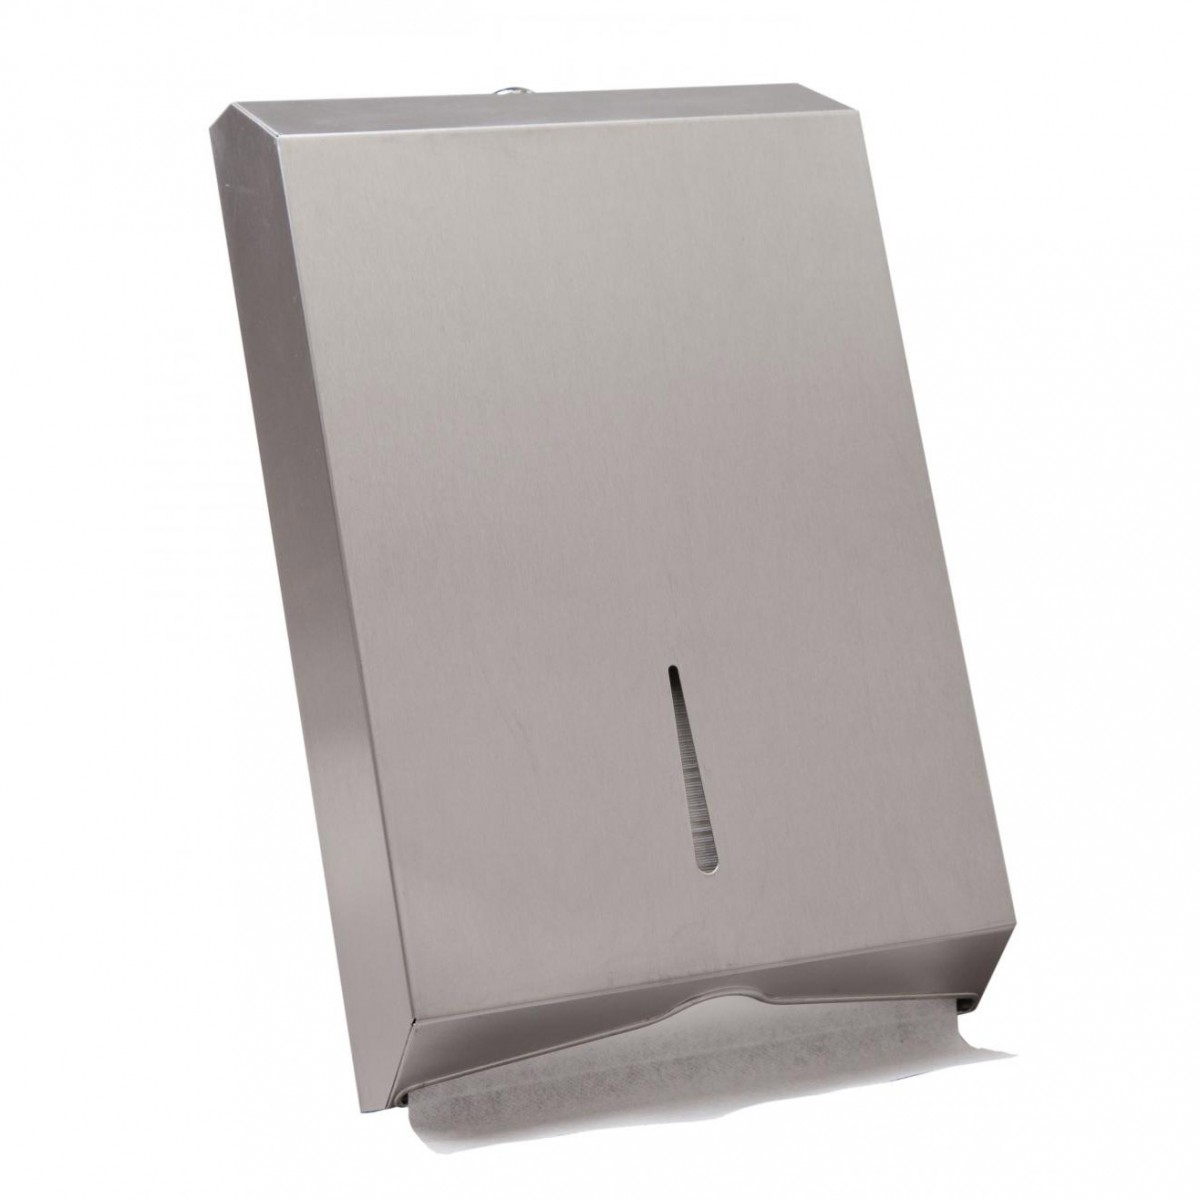 Caprice Interleave Towel Dispenser Stainless Steel